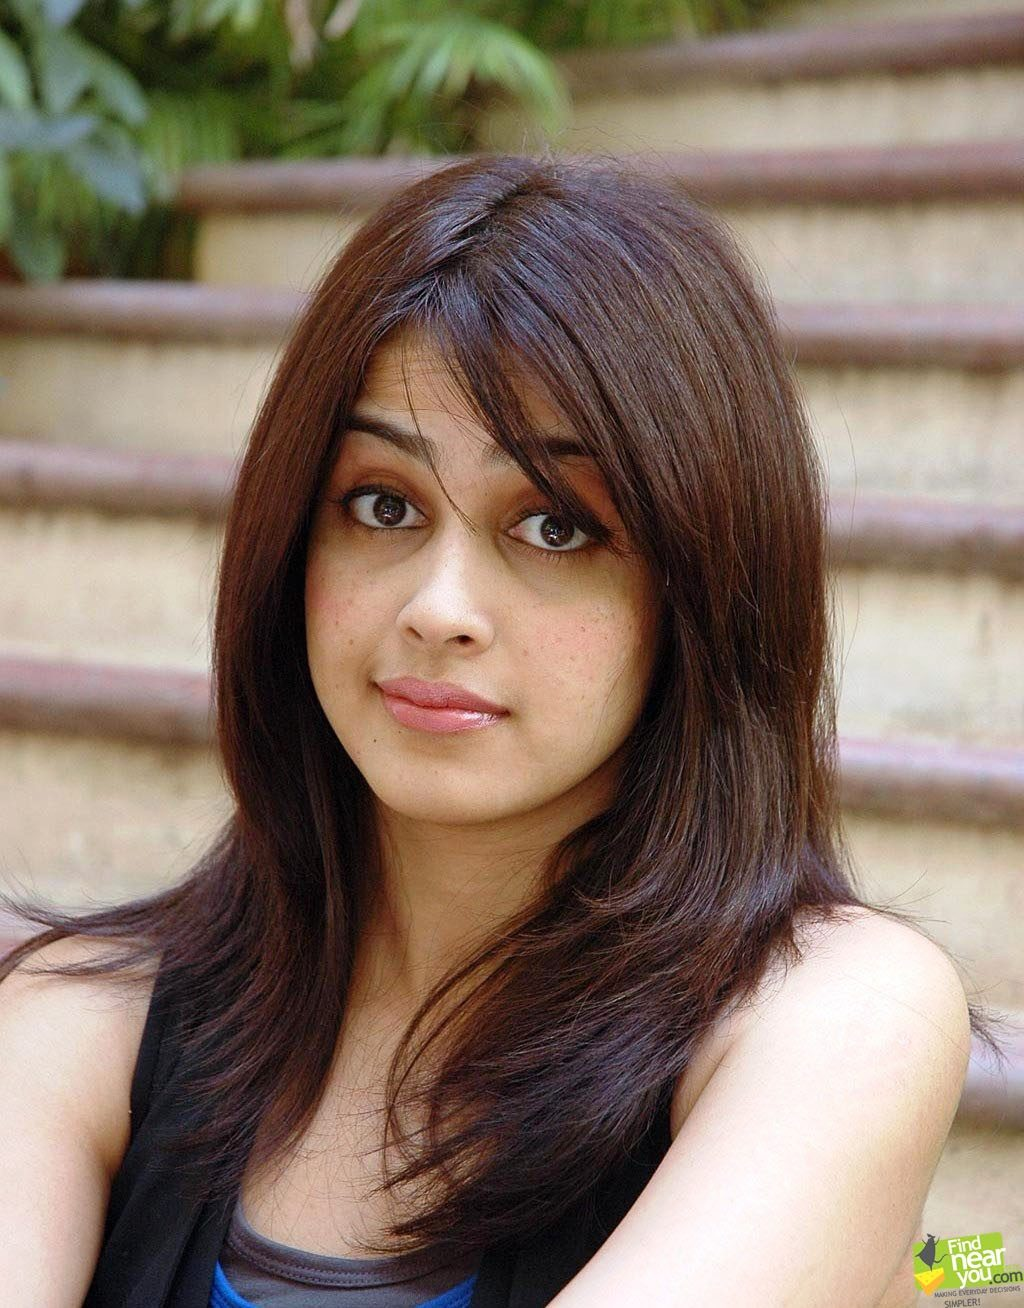 genelia-dsouza-height-weight-age-bra-size-body-stats-affairs-bollywoodfox-2